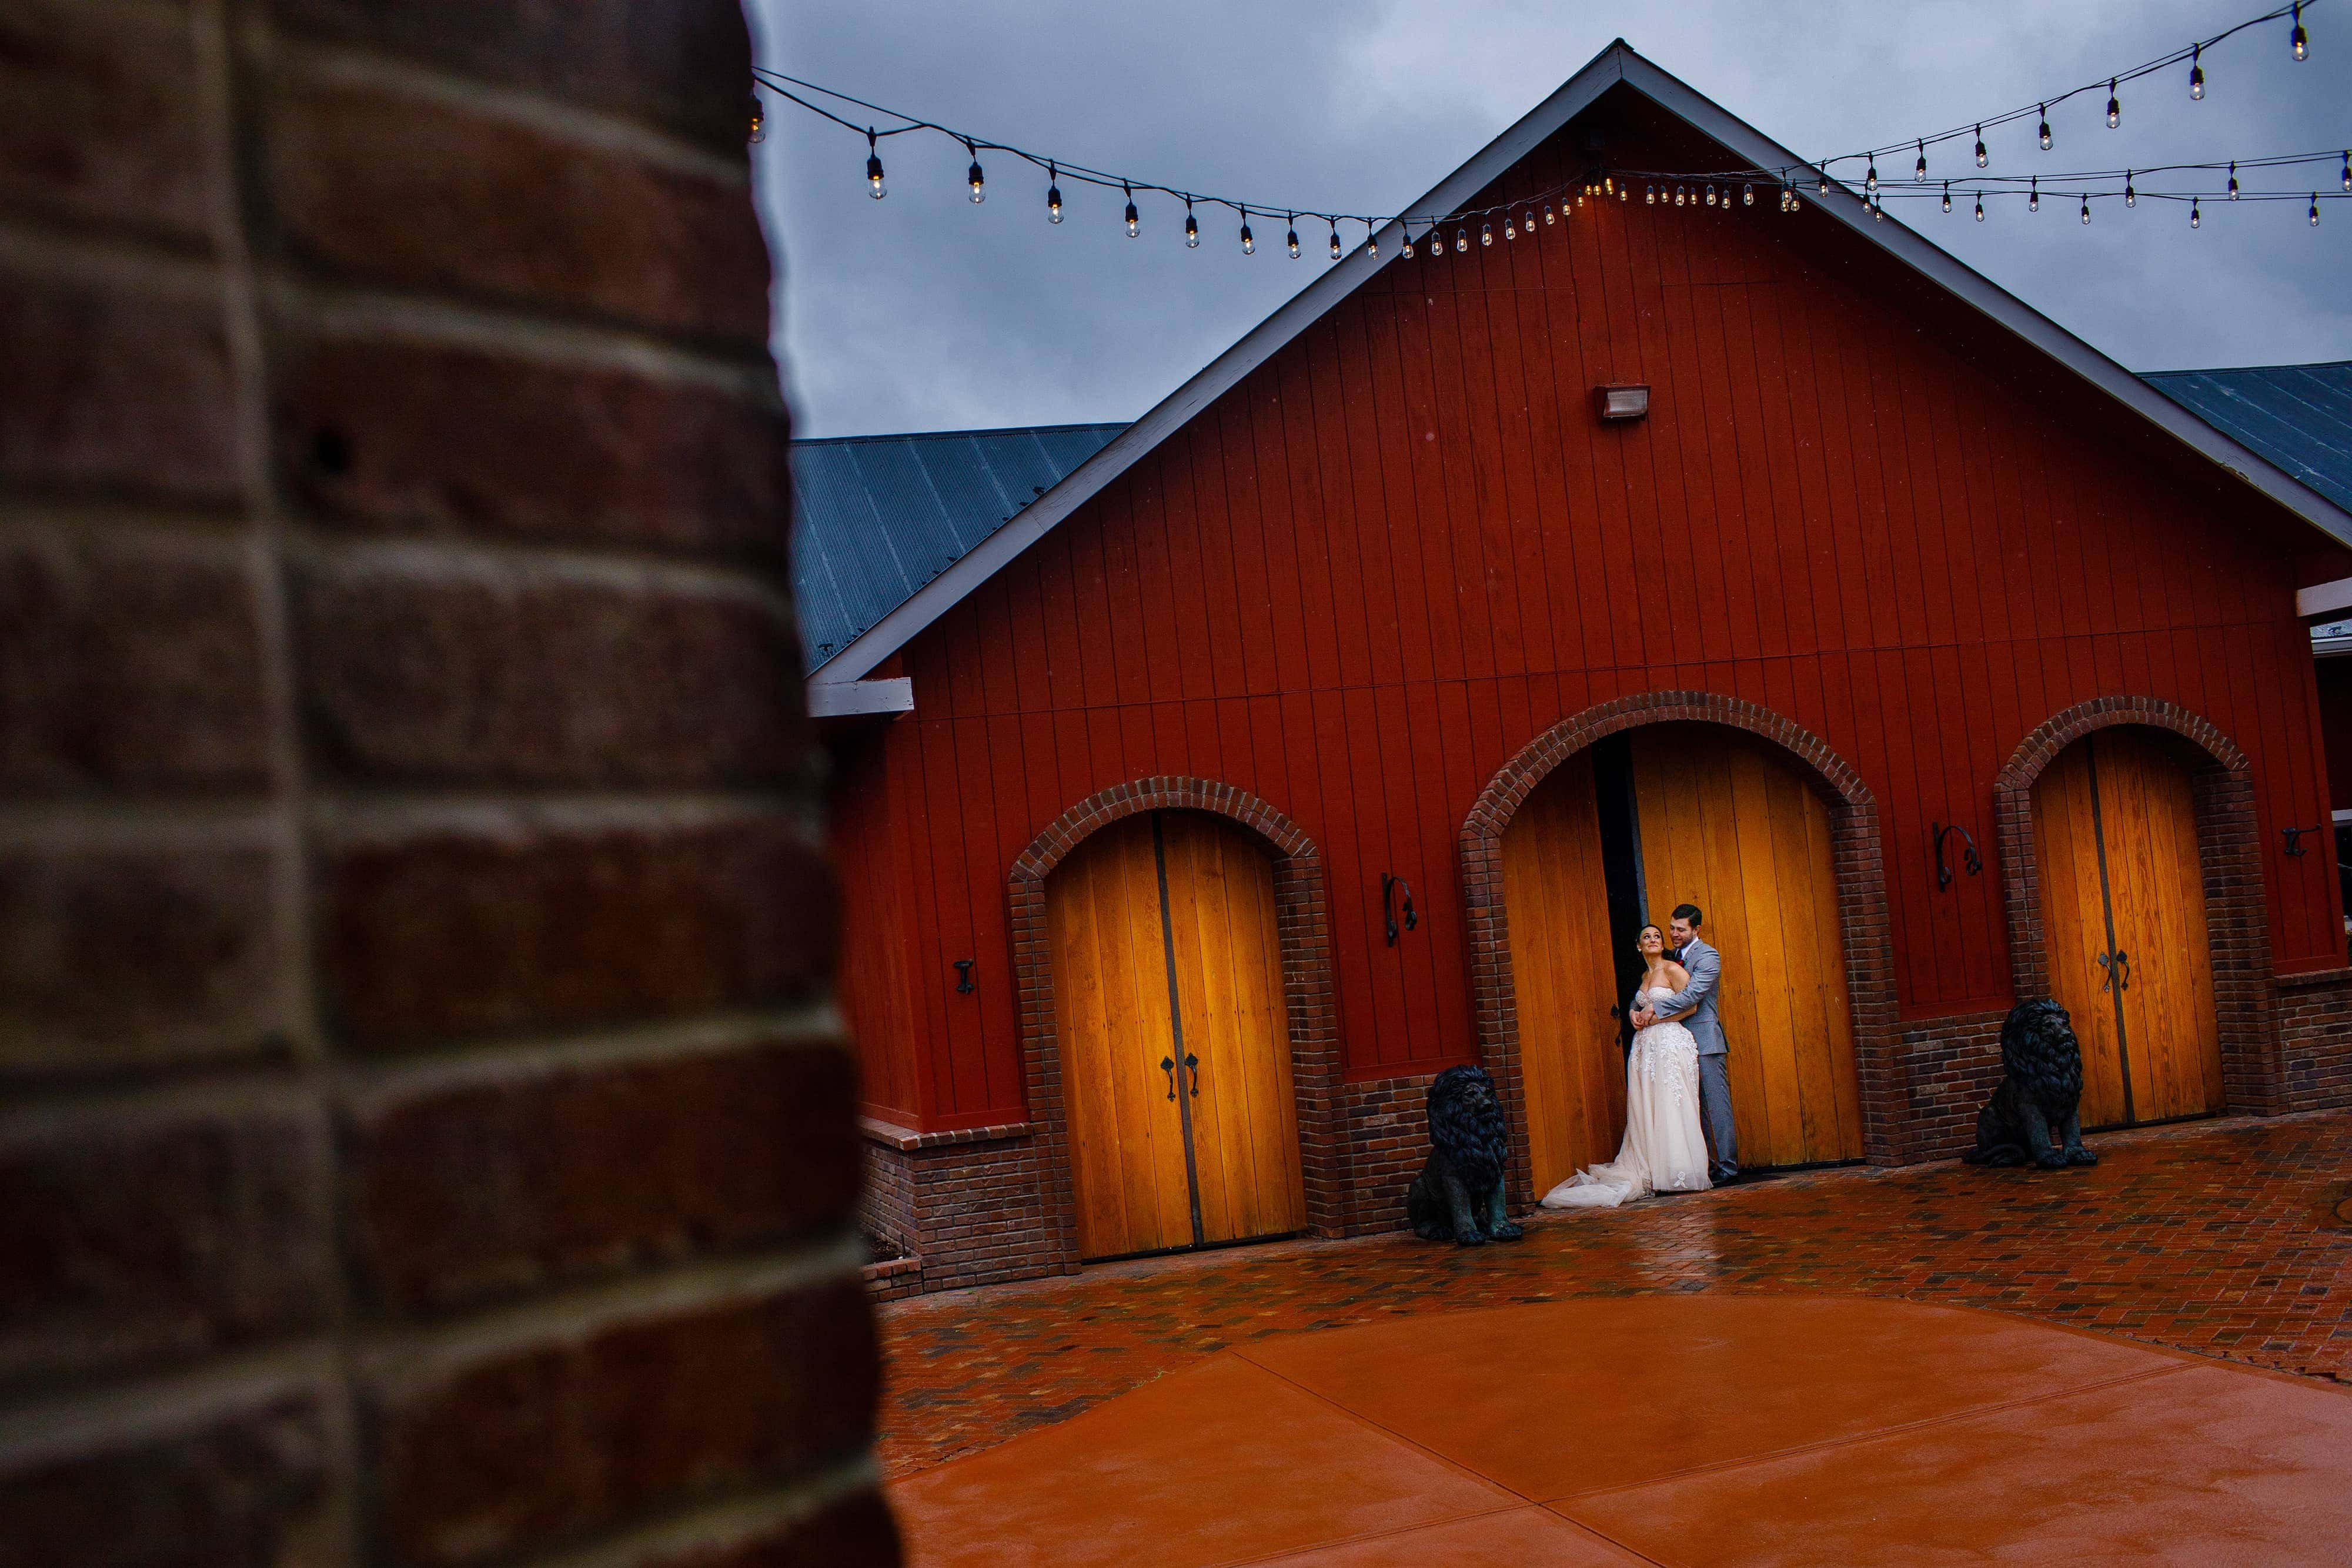 Danielle and Jordan share a moment together during their barn wedding at Crooked Willow Farms in Larkspur, Colorado